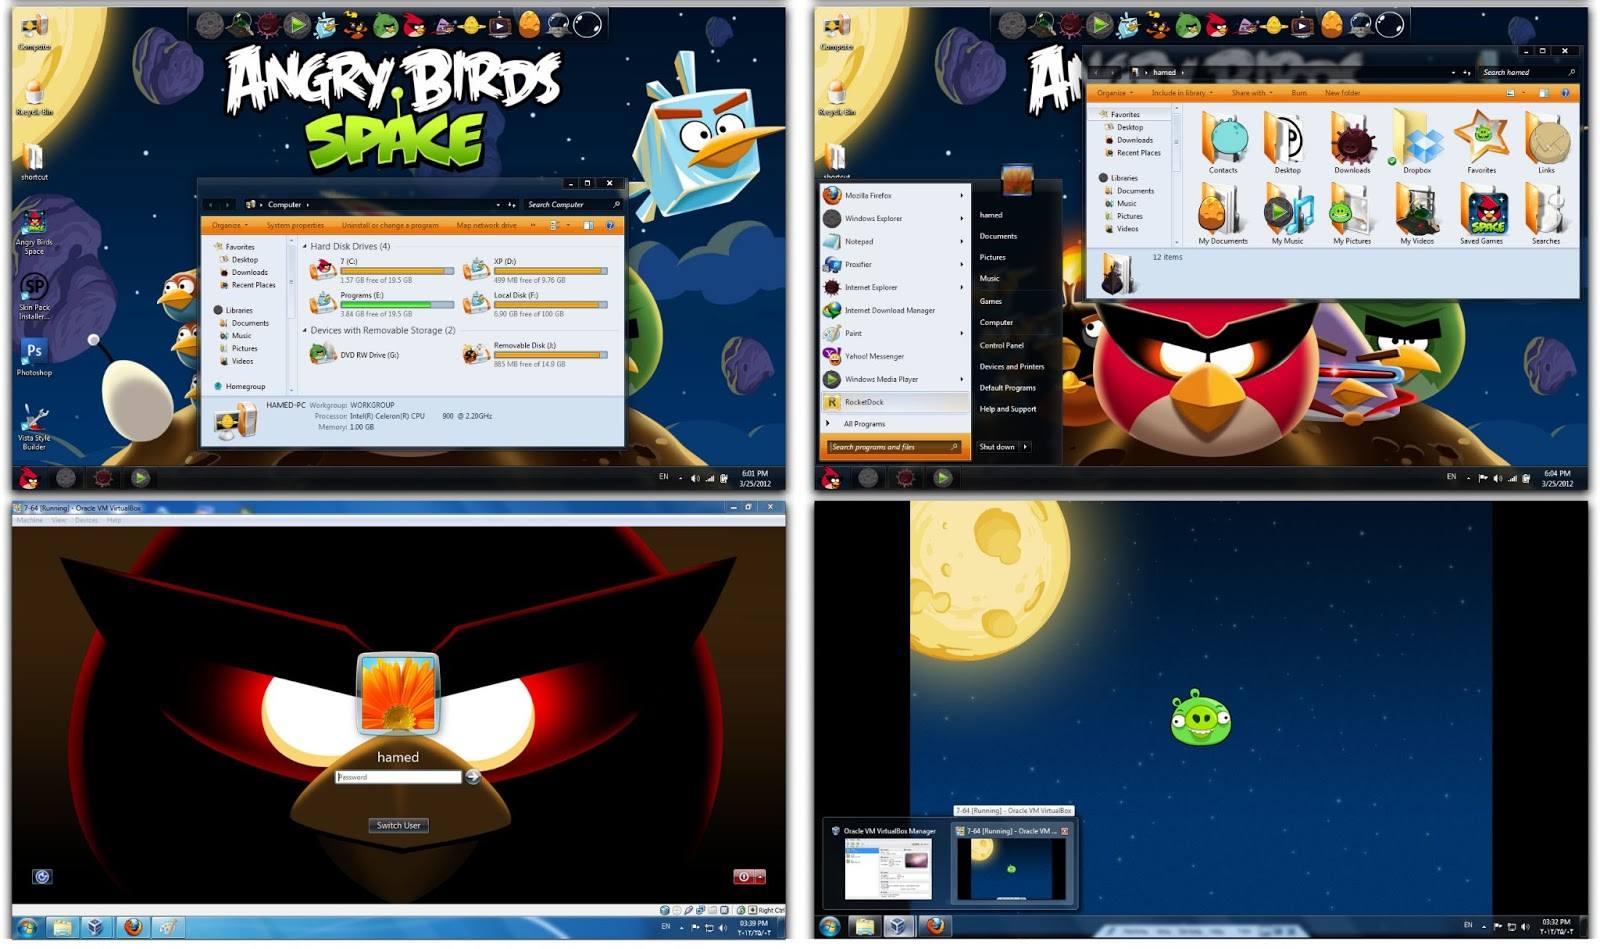 Angry birds space skin pack 2.0 for windows 7 x86 x64